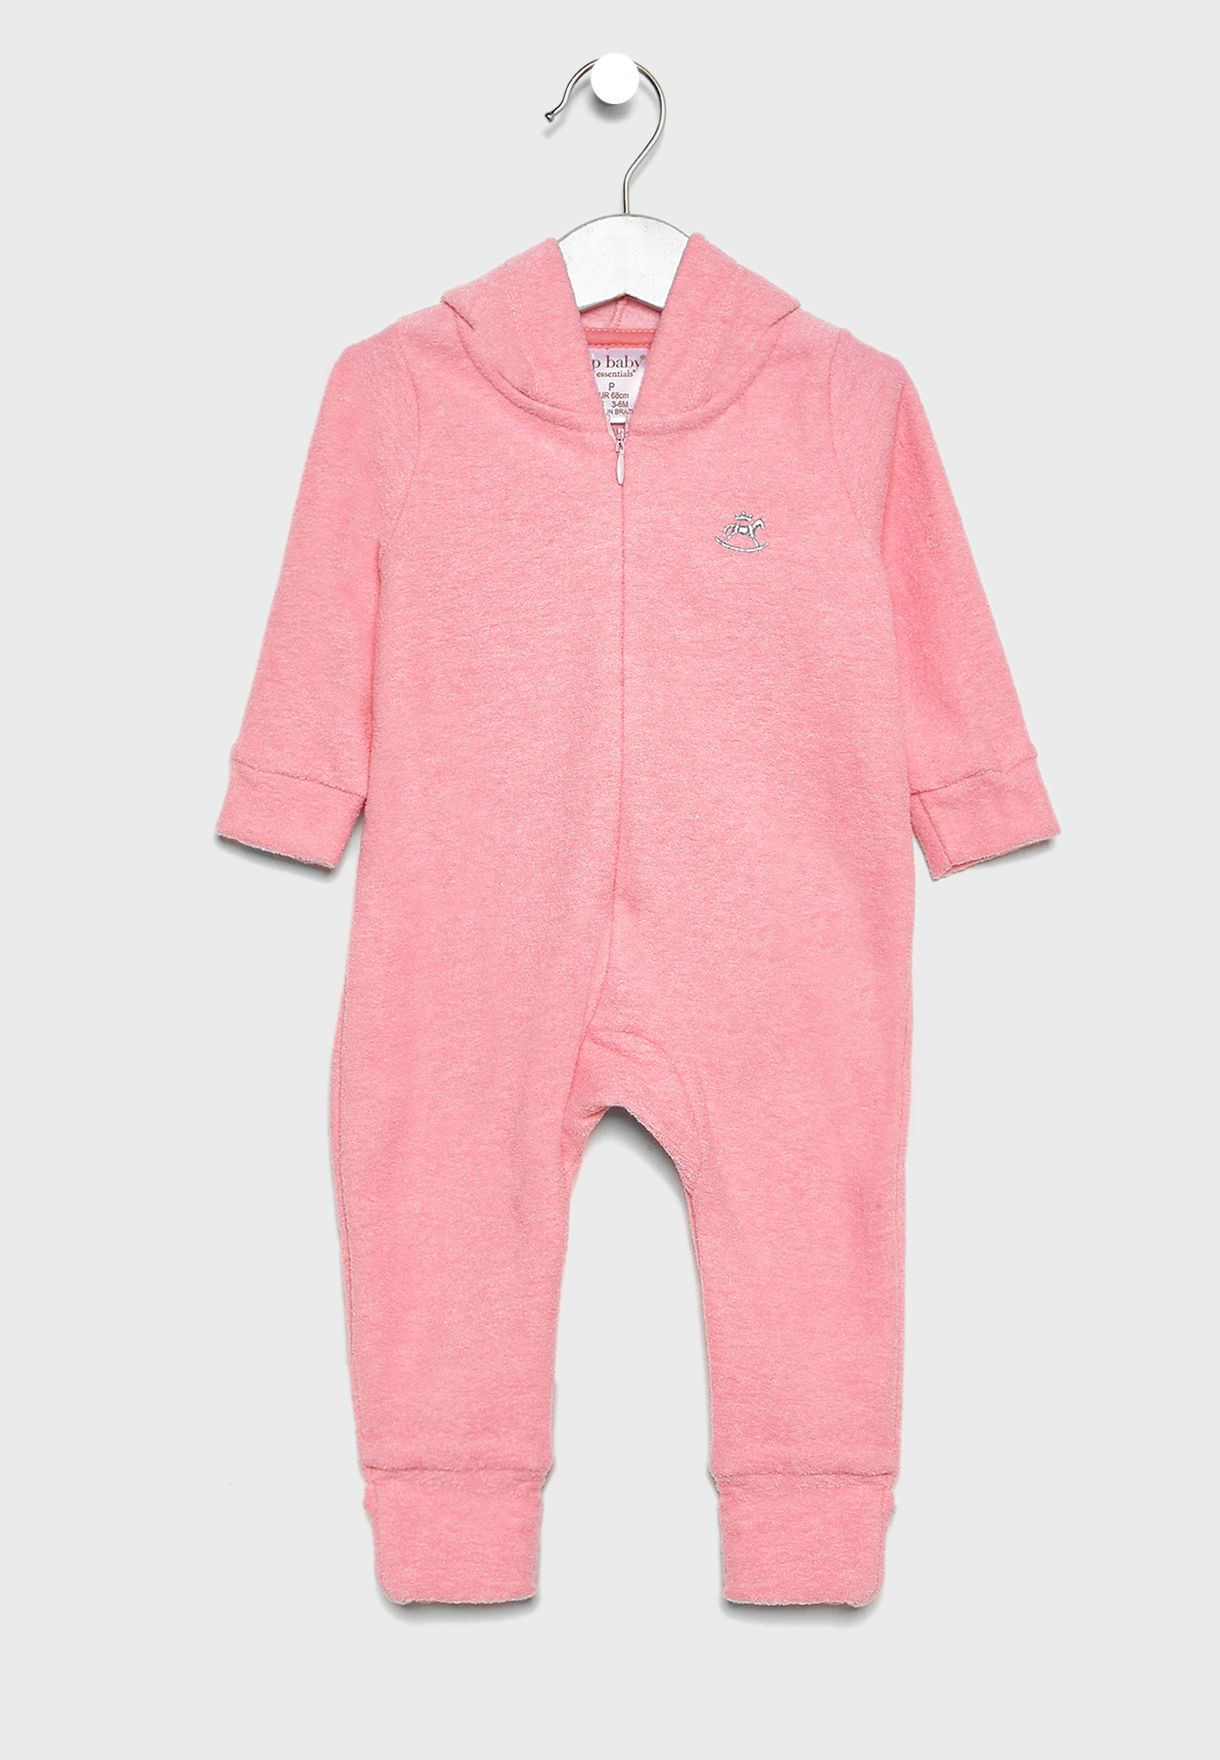 Kids Hooded Romper